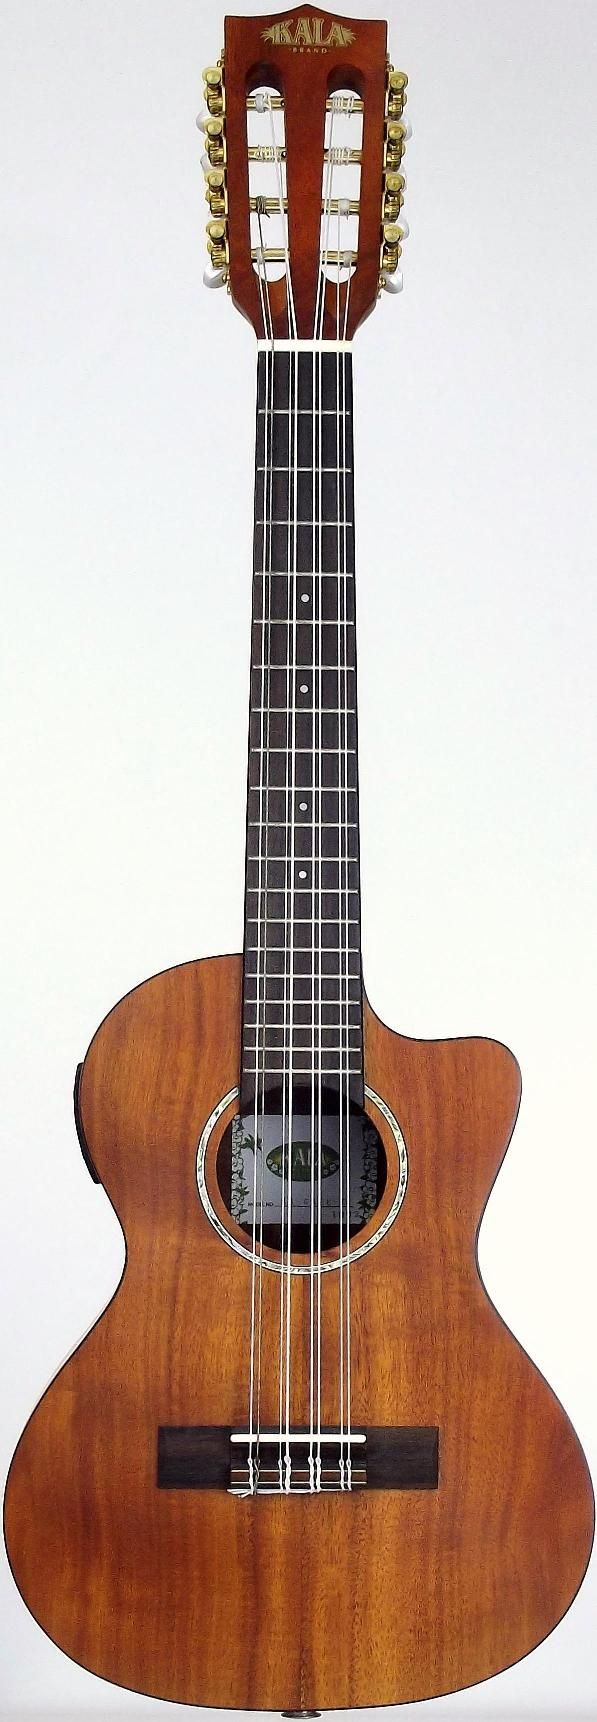 lardyfatboy: New pic of my Kala GA8e golden acacia Taropatch =Lardys Ukulele of the day - a year ago --- https://www.pinterest.com/lardyfatboy/